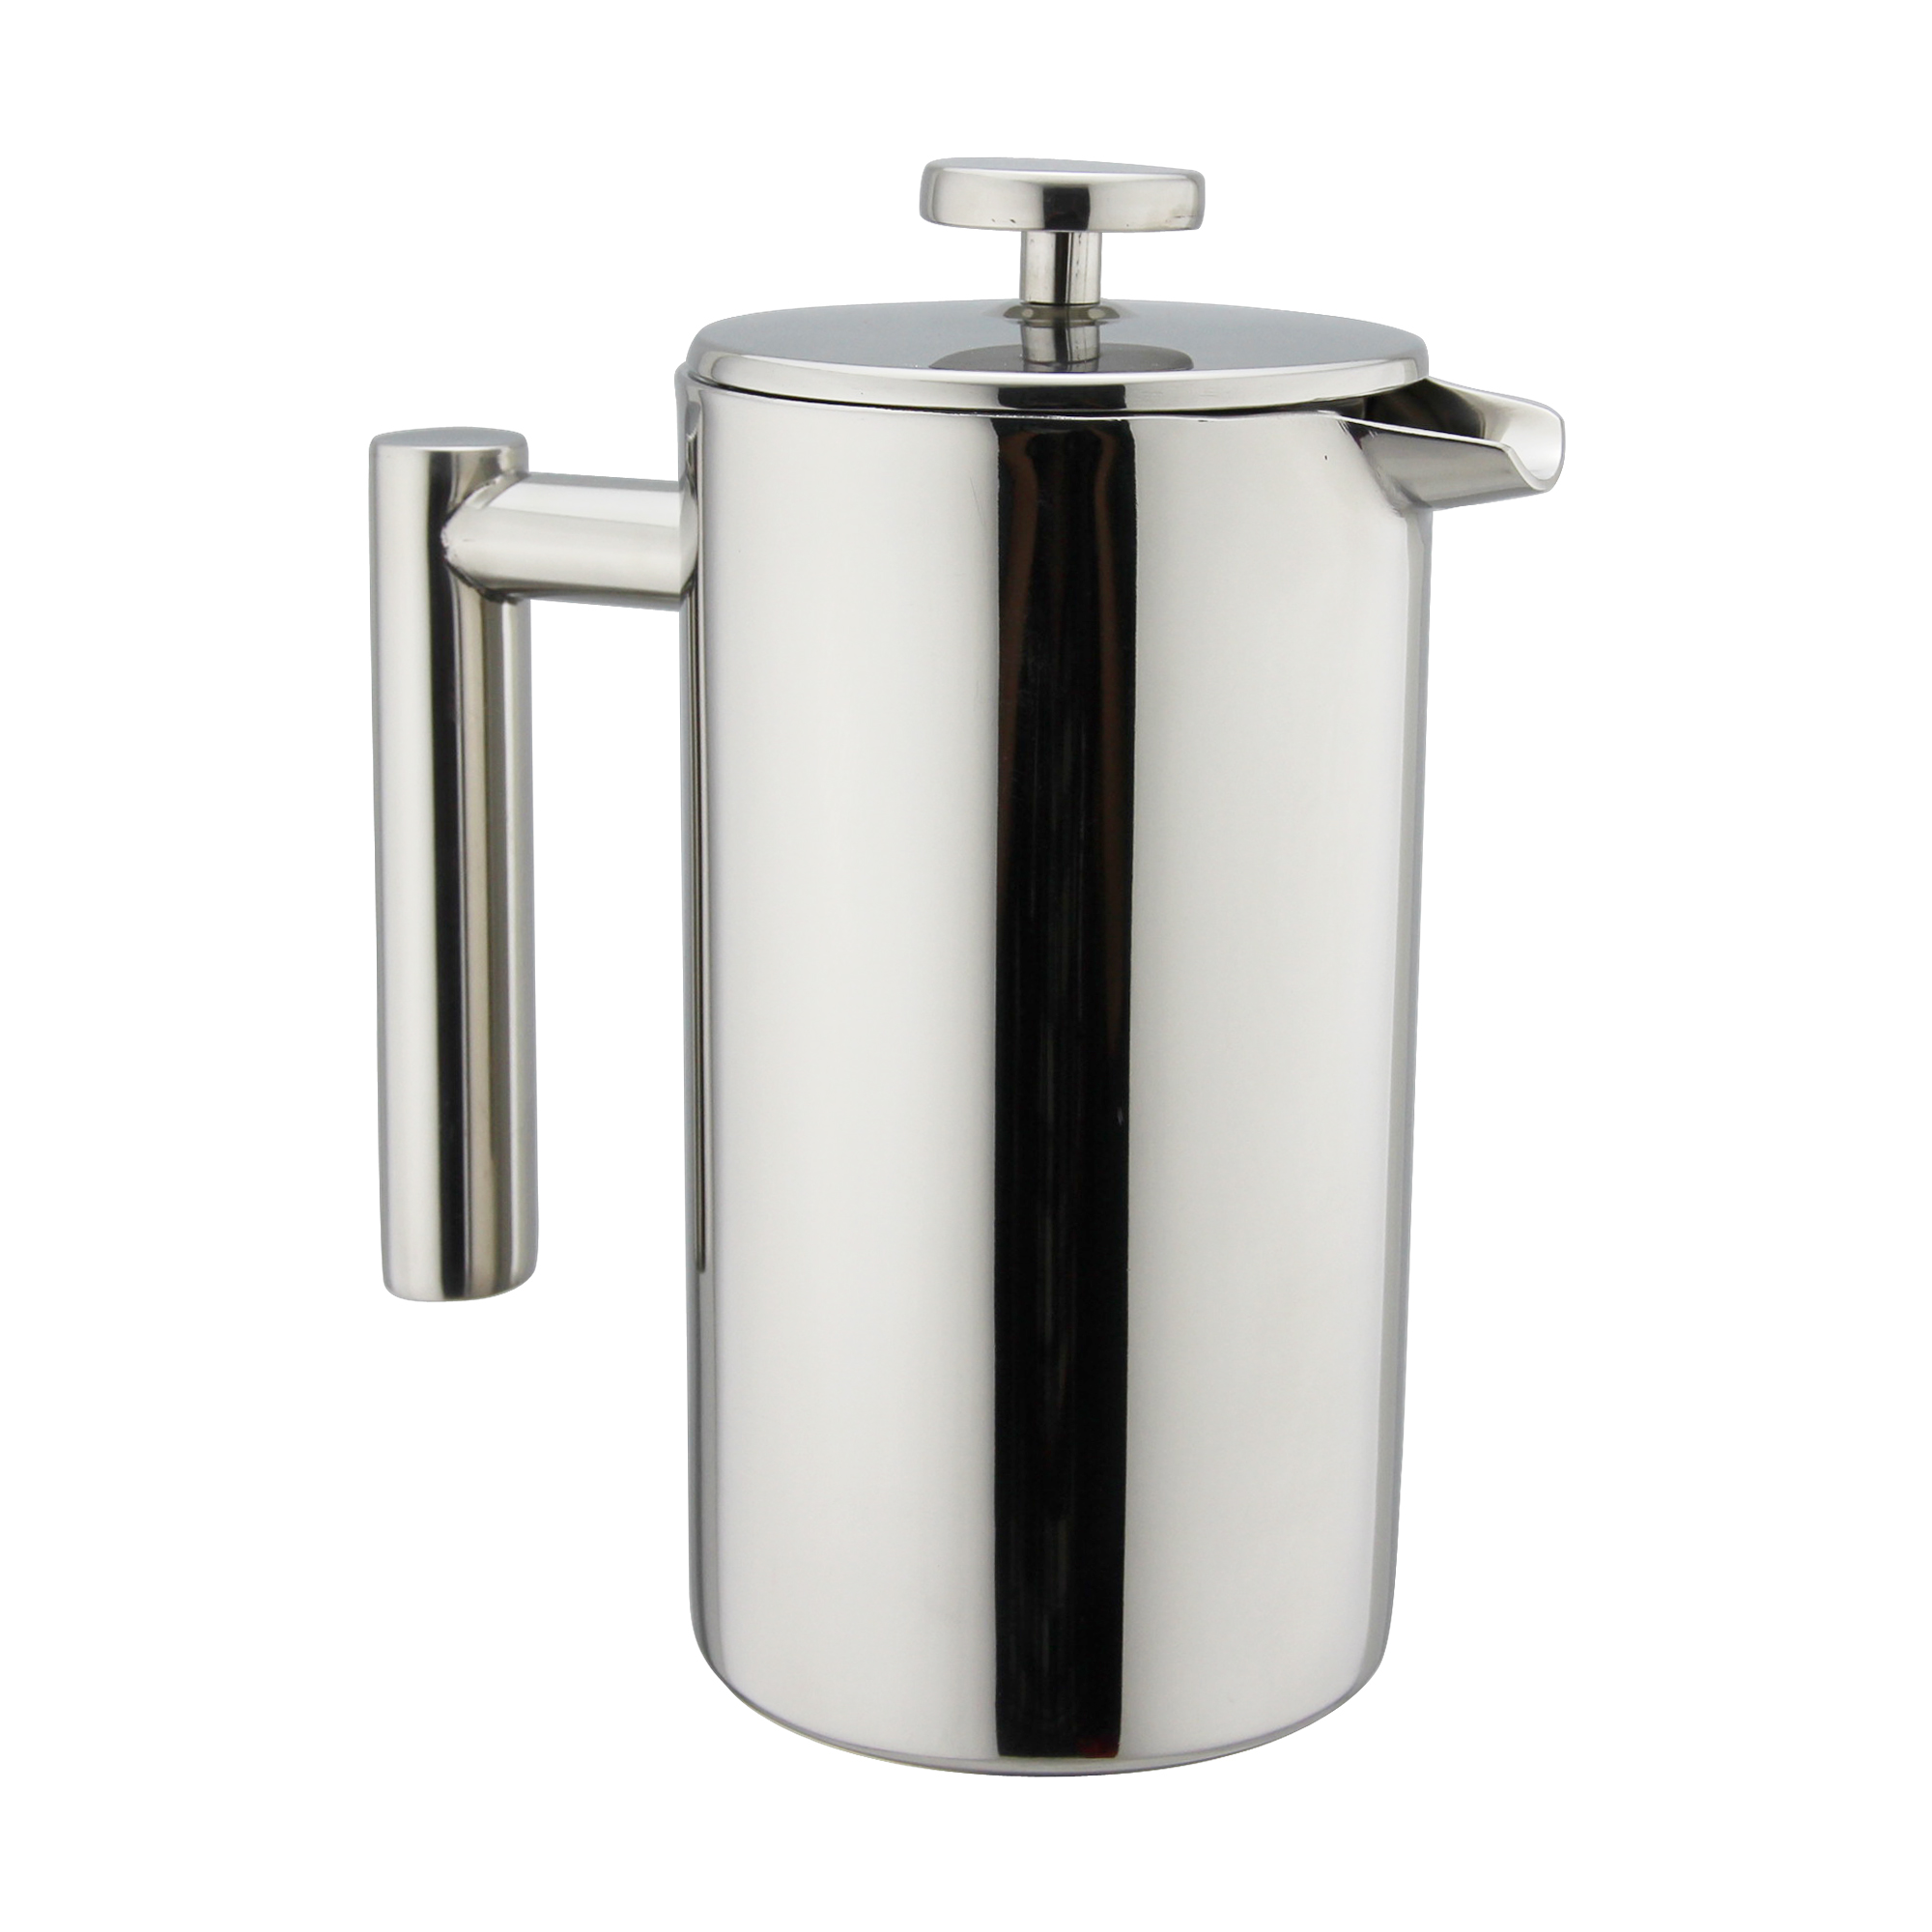 Bed bath beyond french press - 8 Cup Stainless Steel French Press Kuissential